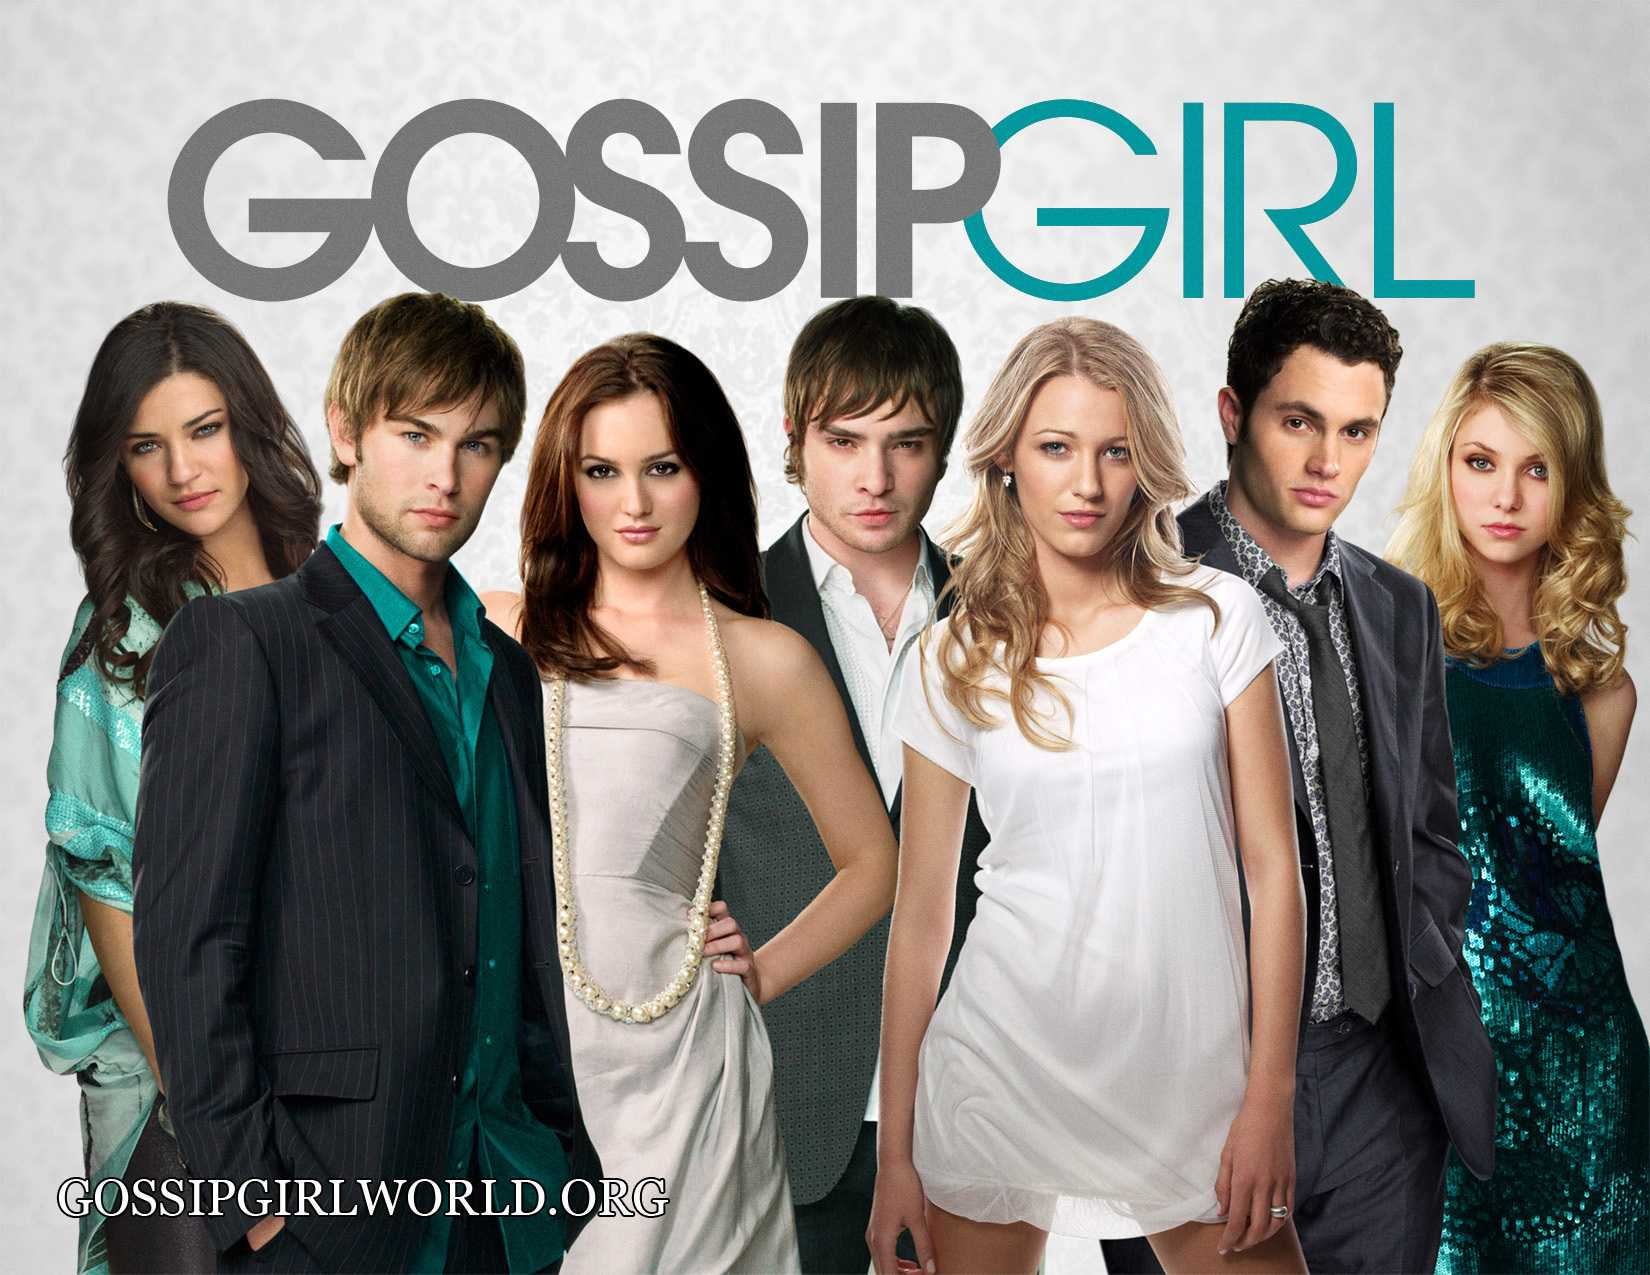 Gossip Girl Cast In Grey Green Theme